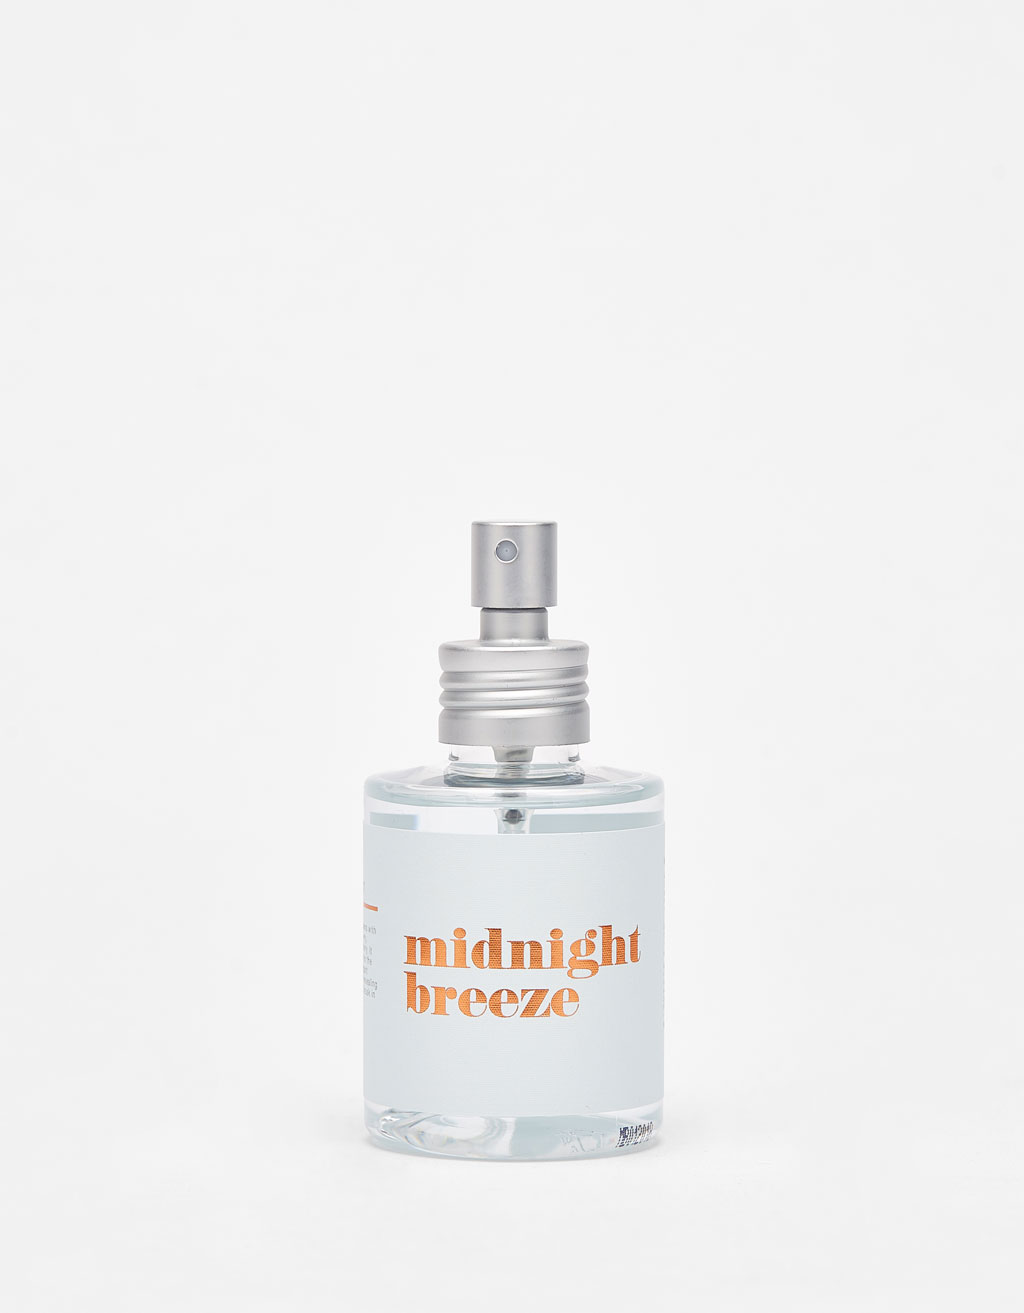 Midnight Breeze body mist